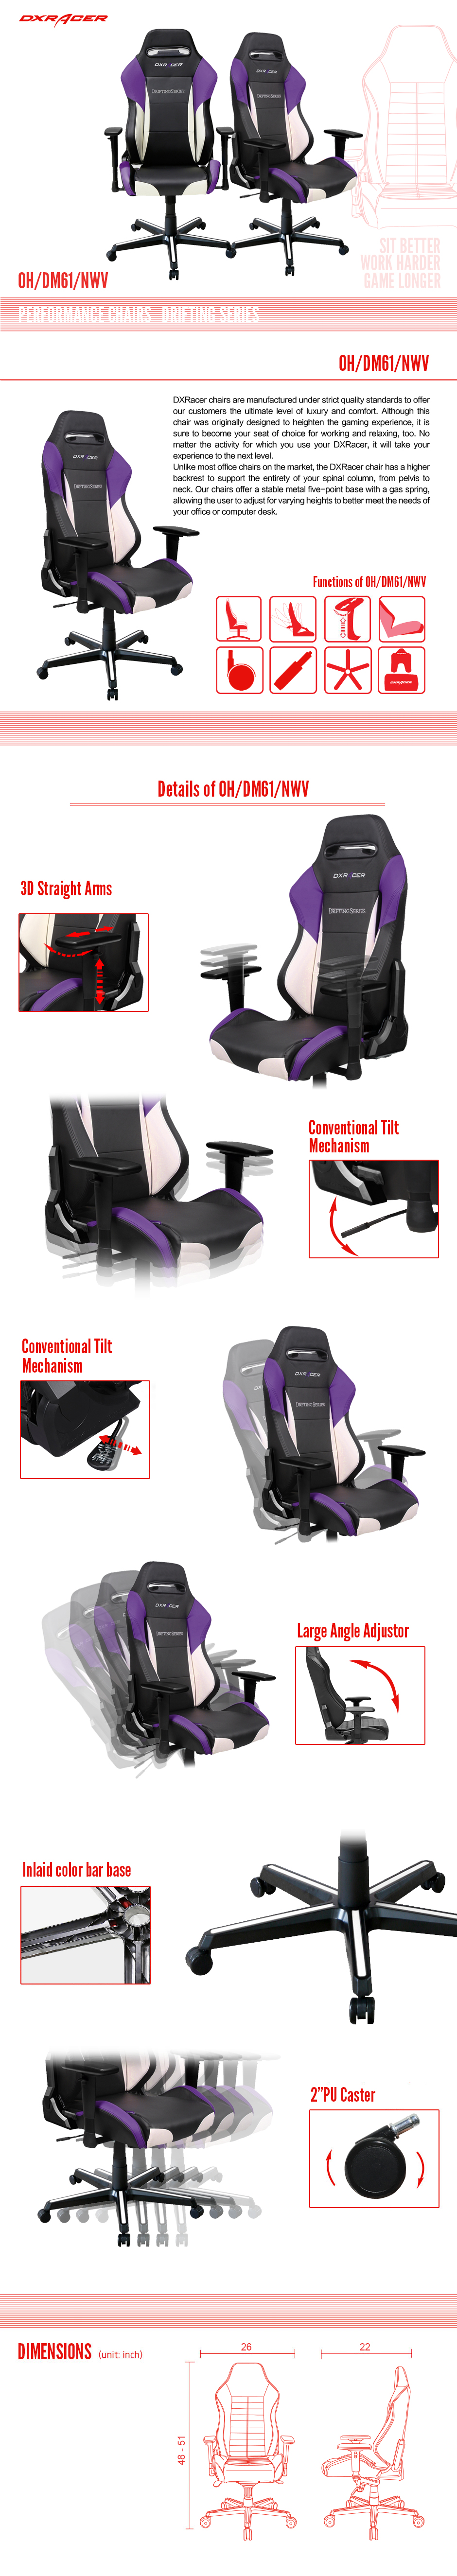 OH/DM61/NWV - Drifting Series - Performance Chairs | DXRacer Official Website - Best Gaming Chair and Desk in the World #FairfieldGrantsWishes